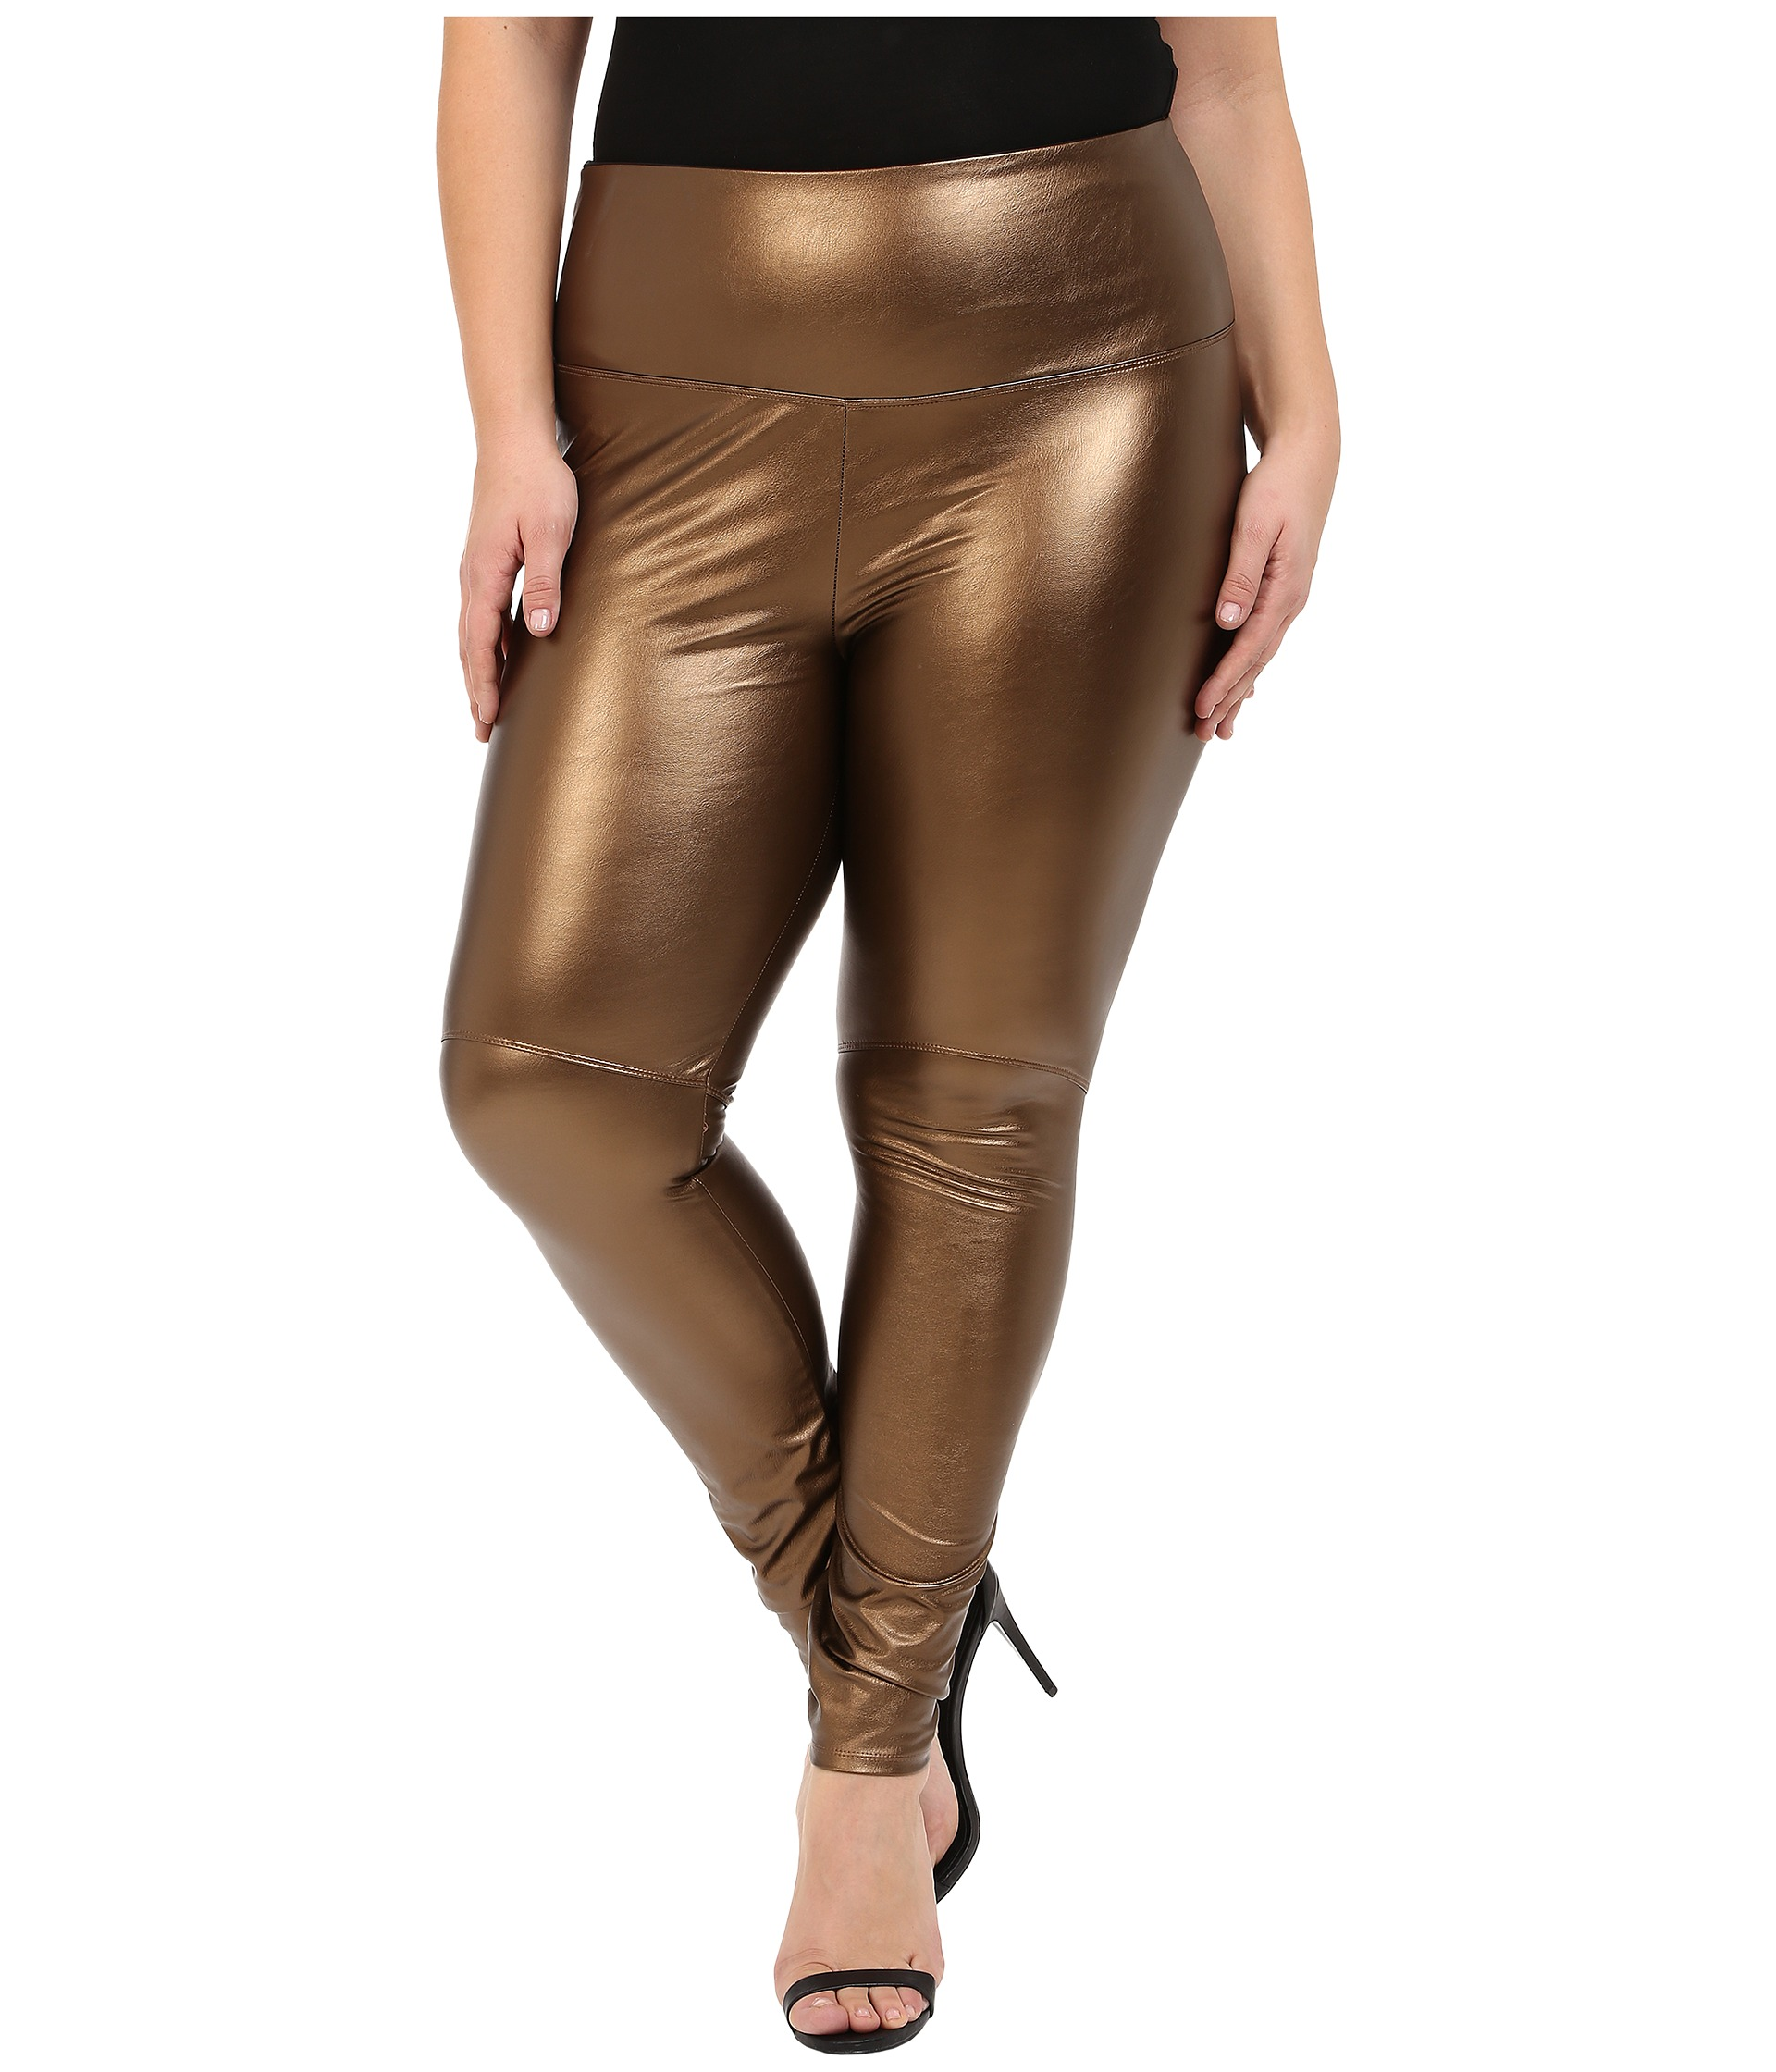 Shop eBay for great deals on Faux Leather Plus Size Leggings for Women. You'll find new or used products in Faux Leather Plus Size Leggings for Women on eBay. MICHAEL KORS $ Womens New Black Faux Leather Panel Leggings 3X Plus B+B. $ was - $ | 73% OFF. Free shipping. Plus Size Lace Wet Look Leggings Leather Look Diva.